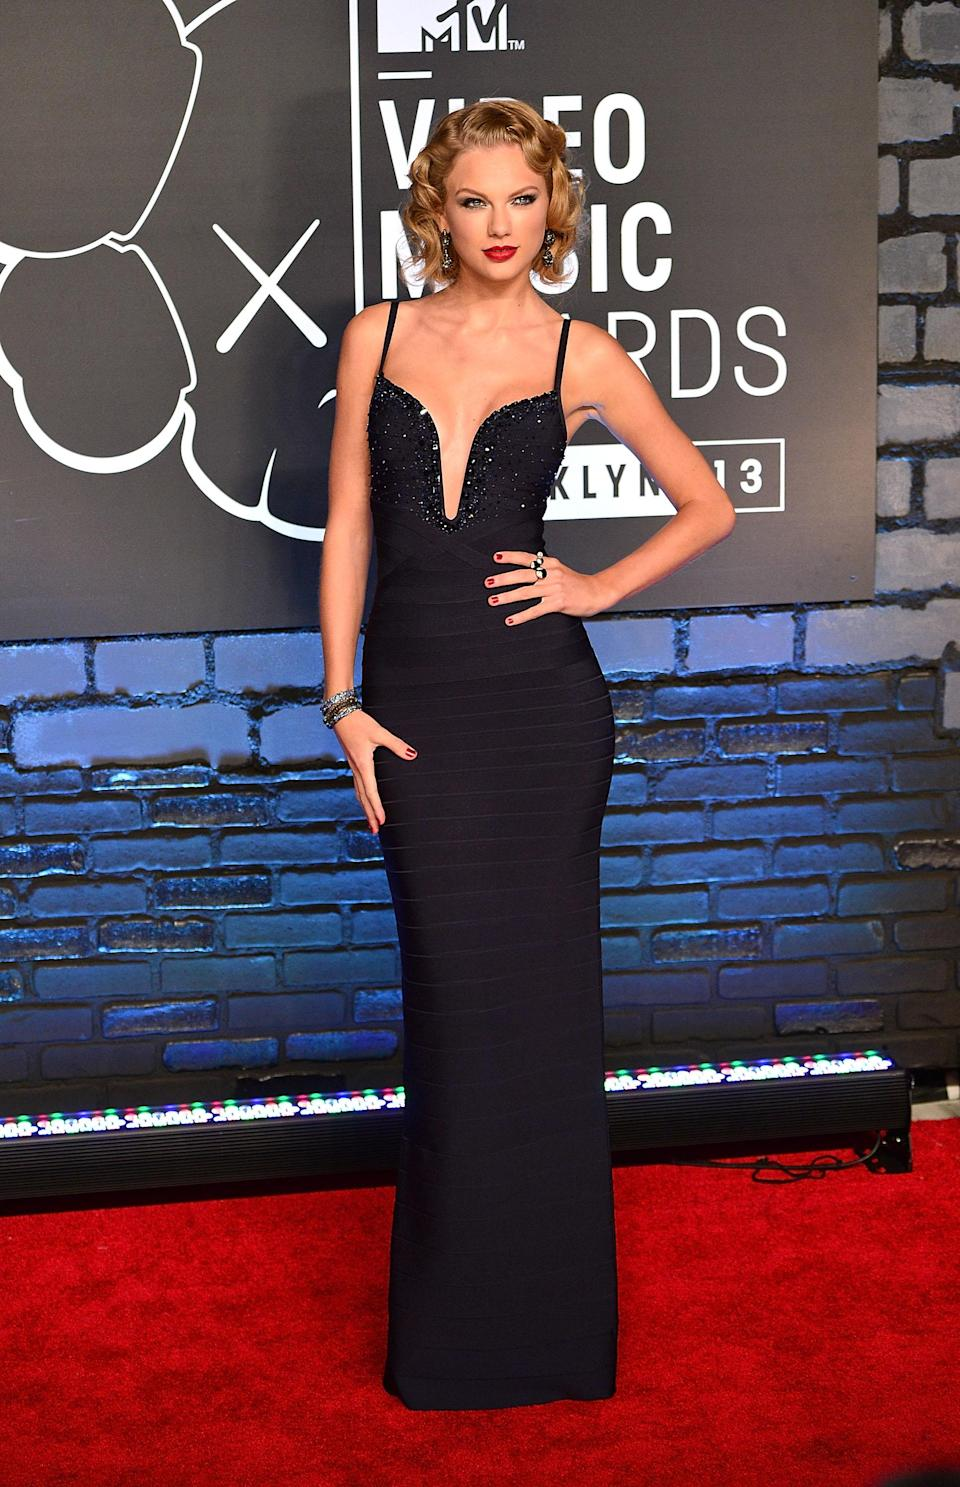 Taylor Swift sizzled with pinup girl hair and a Hervé Léger bandage gown.